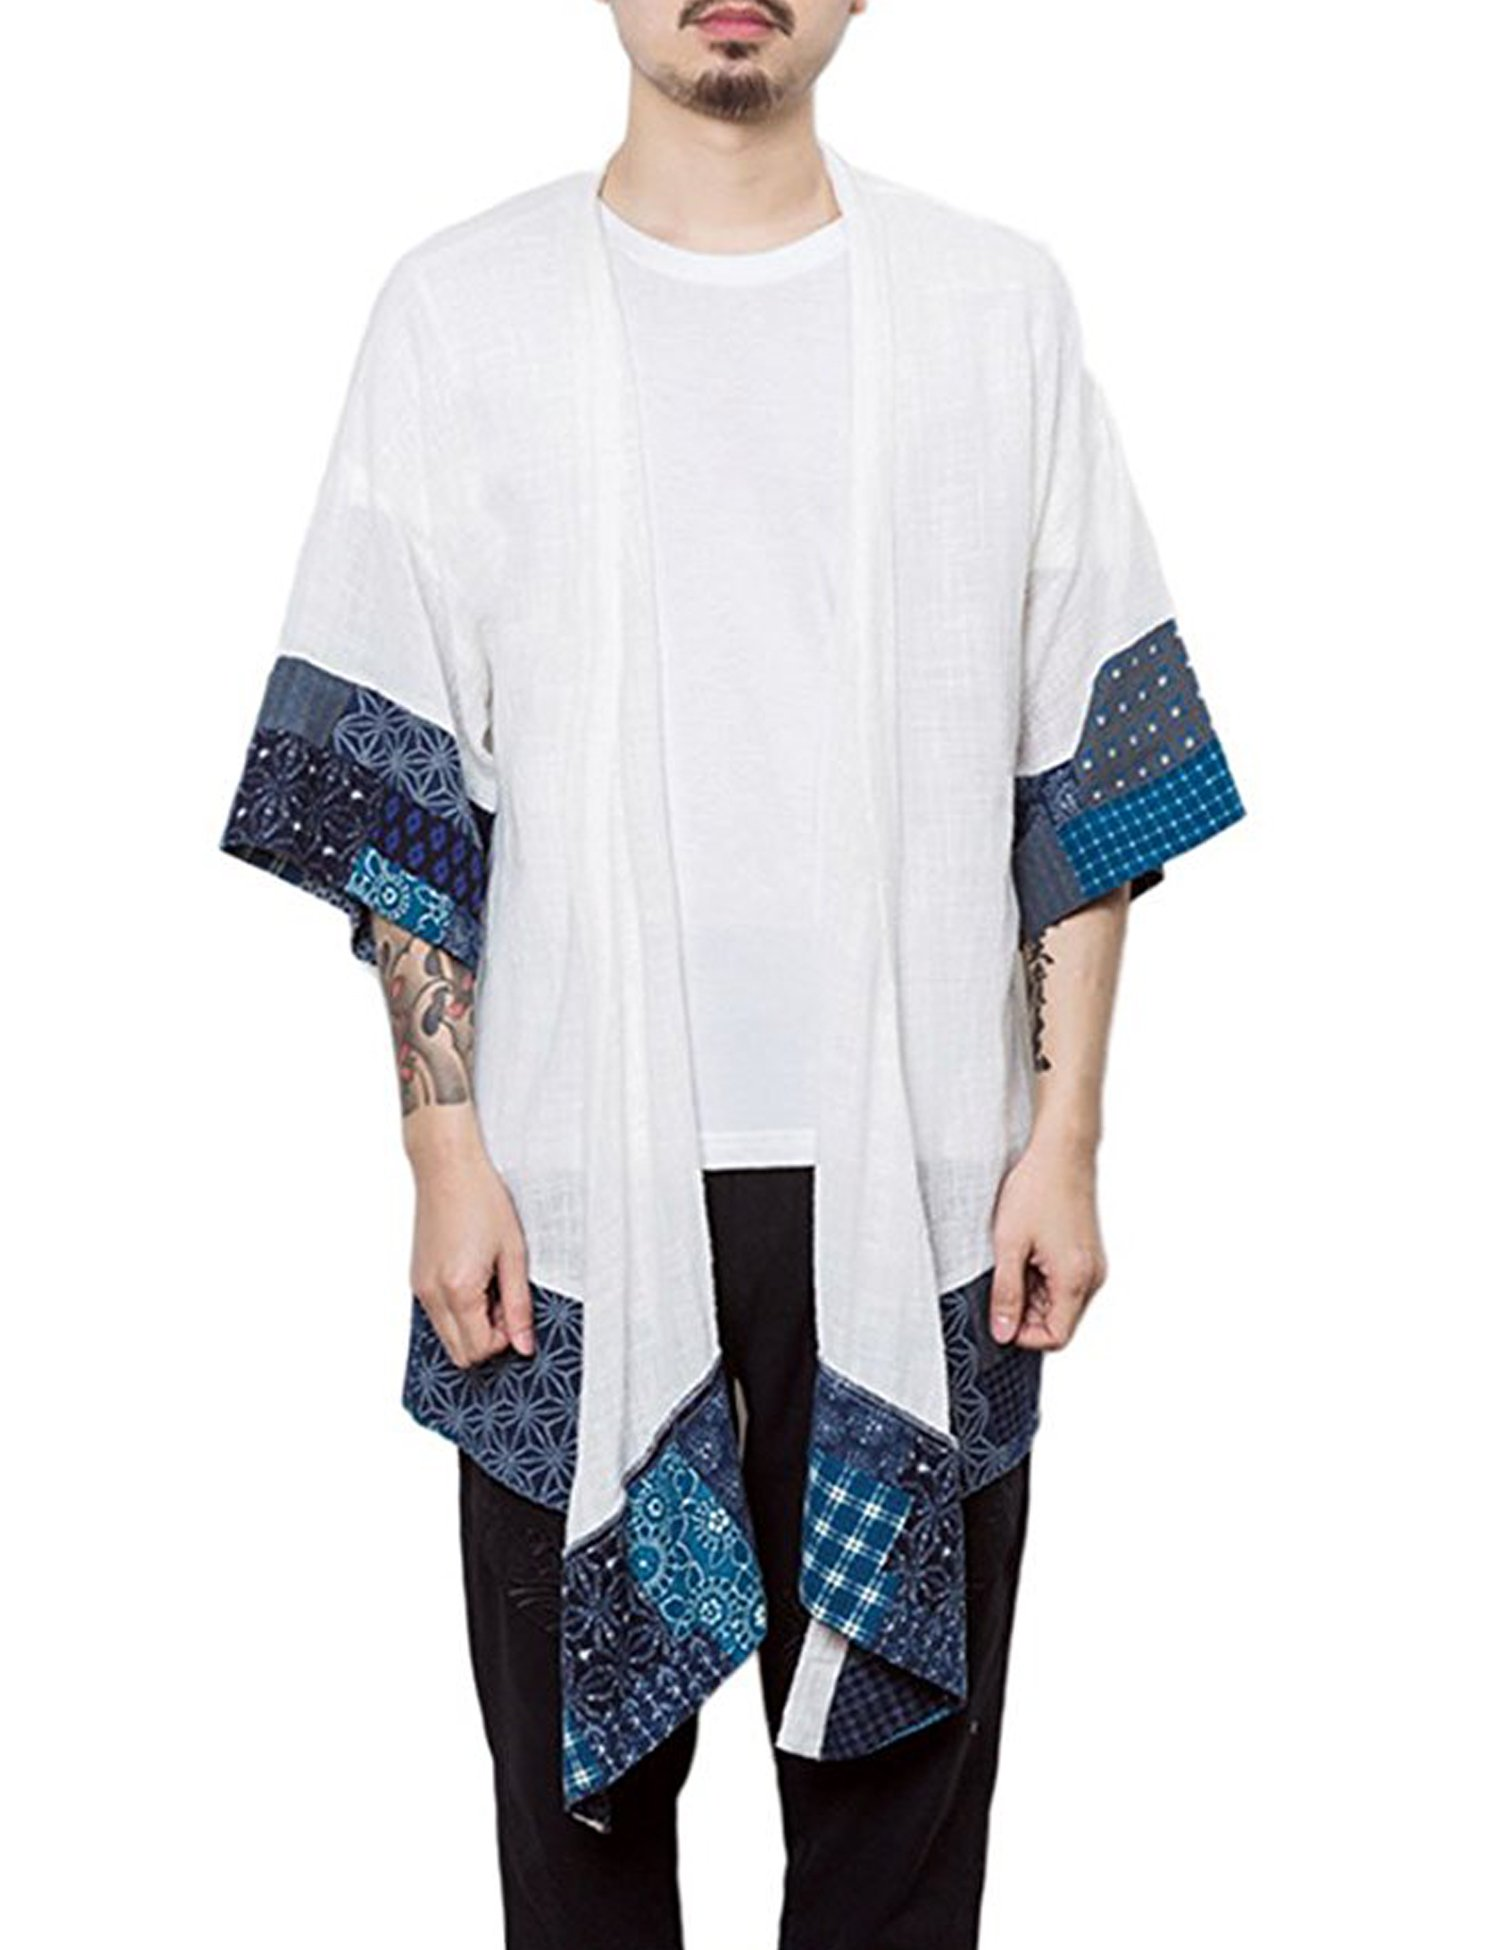 COOFANDY Men's Cardigan Lightweight Cotton Sweater Kimono Style Cloak Open Front Cape,White,Large